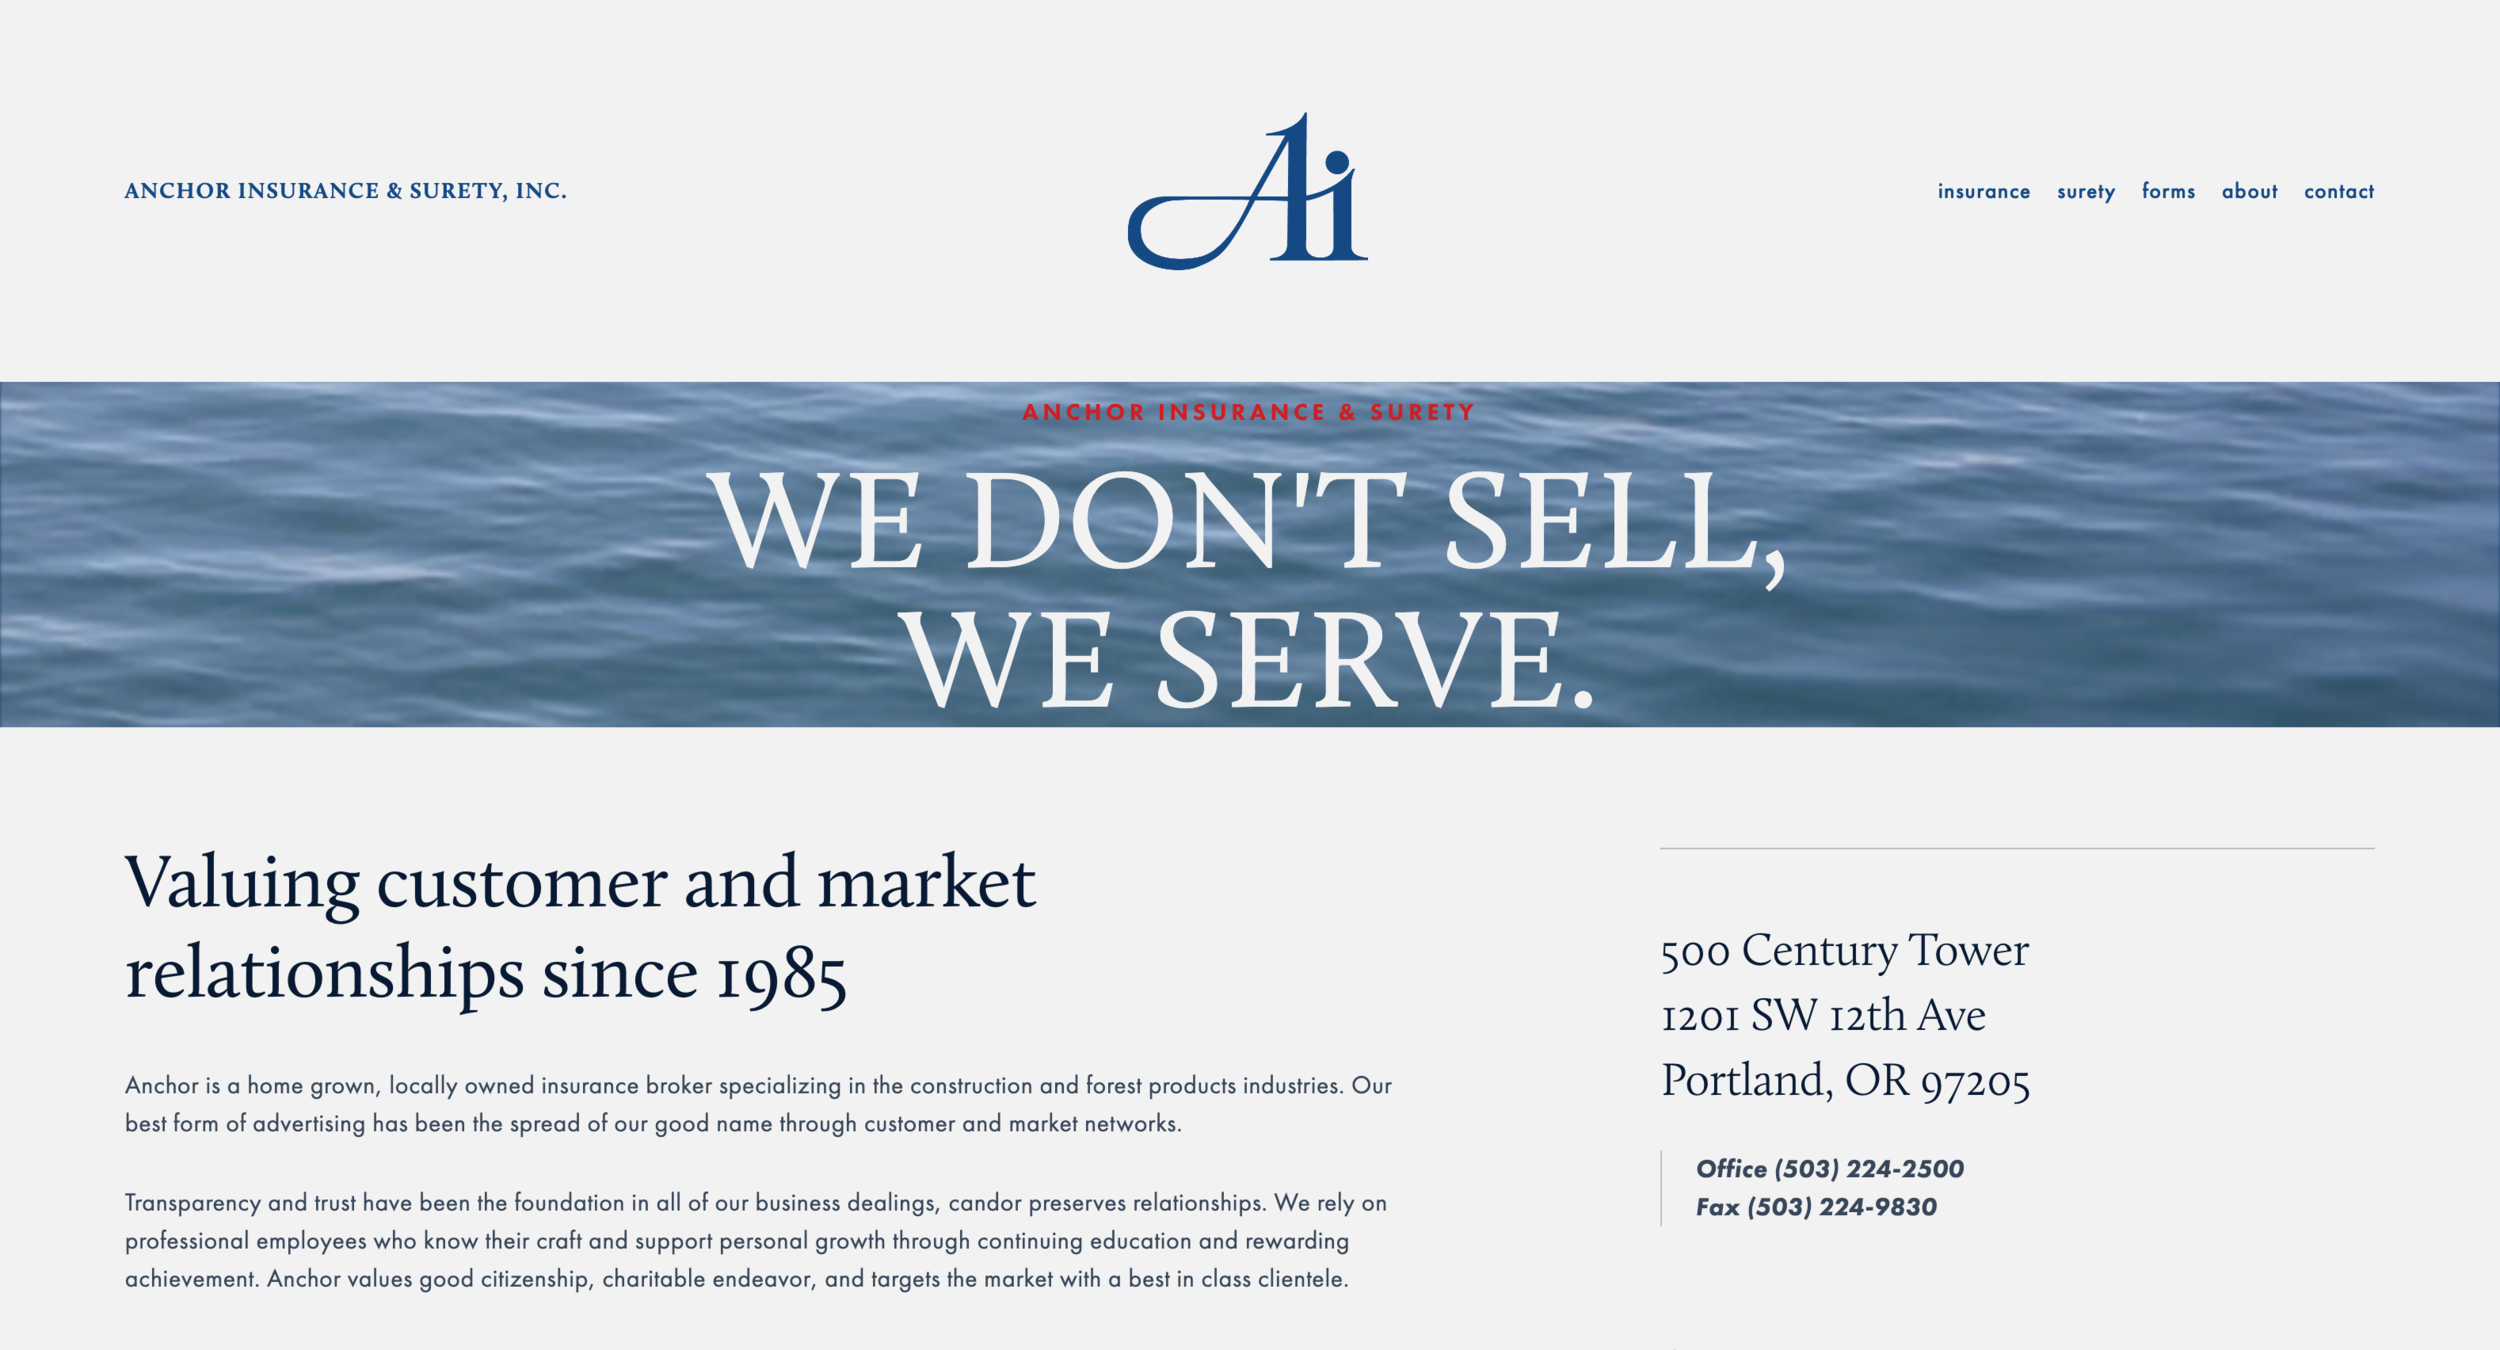 Anchor Insurance has been in the marketplace for over 30 years and has become a respectable commercial insurance and surety firm. In need of a modern engaging website where they could celebrate their success and provide easy to use forms for their clients. Optimized and responsive for computers, tablets, and phones for a simple and seemless front-facing user expeirence.